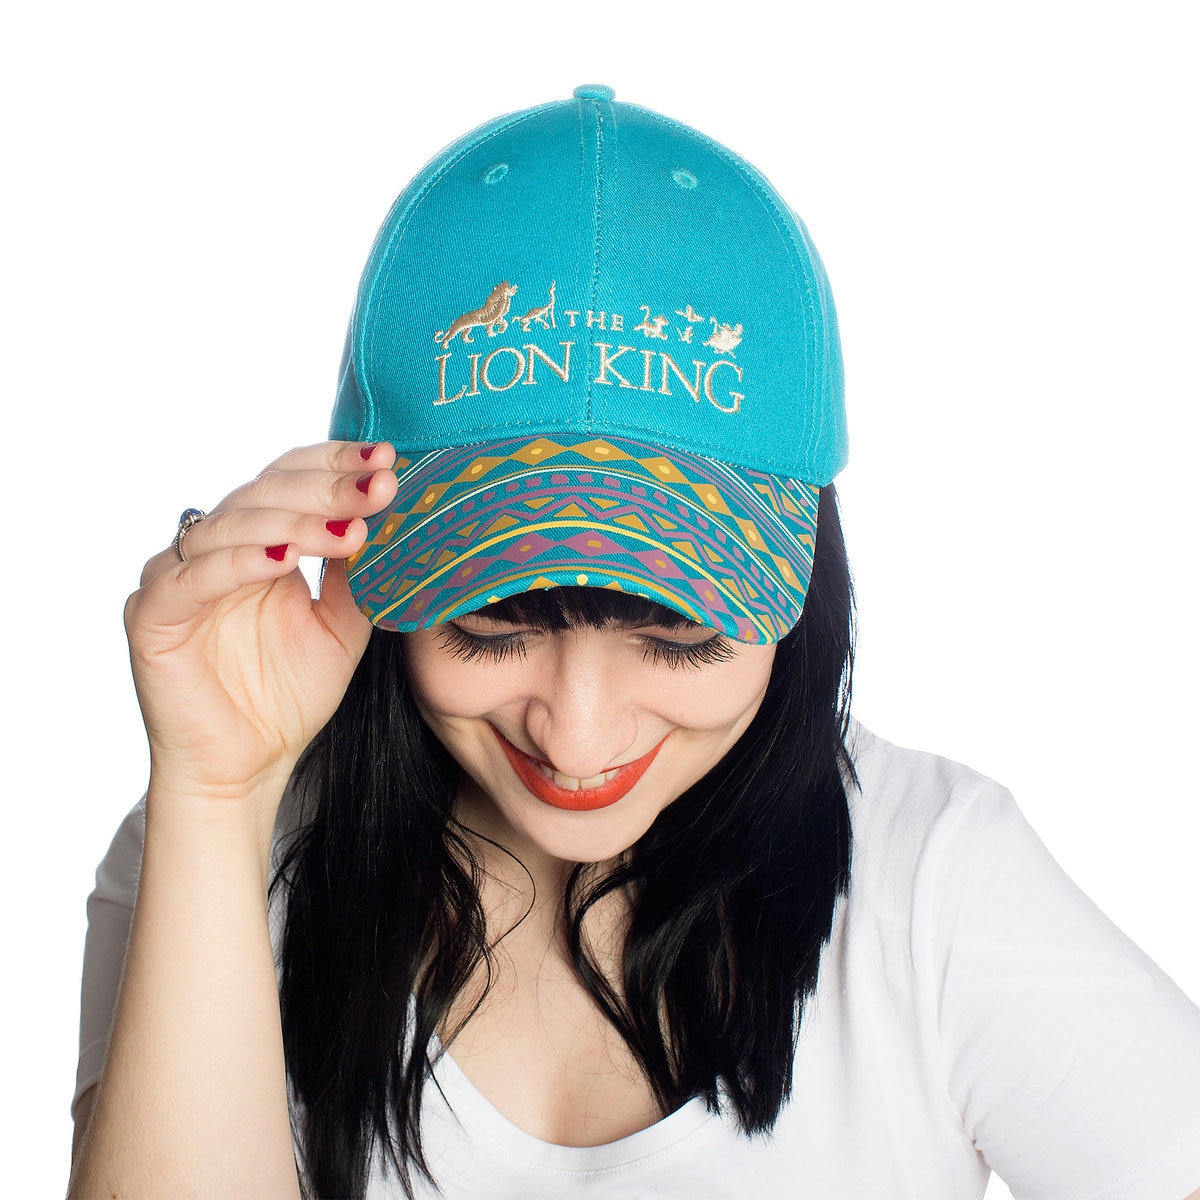 8bc32a458c776 Product Image of The Lion King Baseball Cap for Adults by Cakeworthy   5